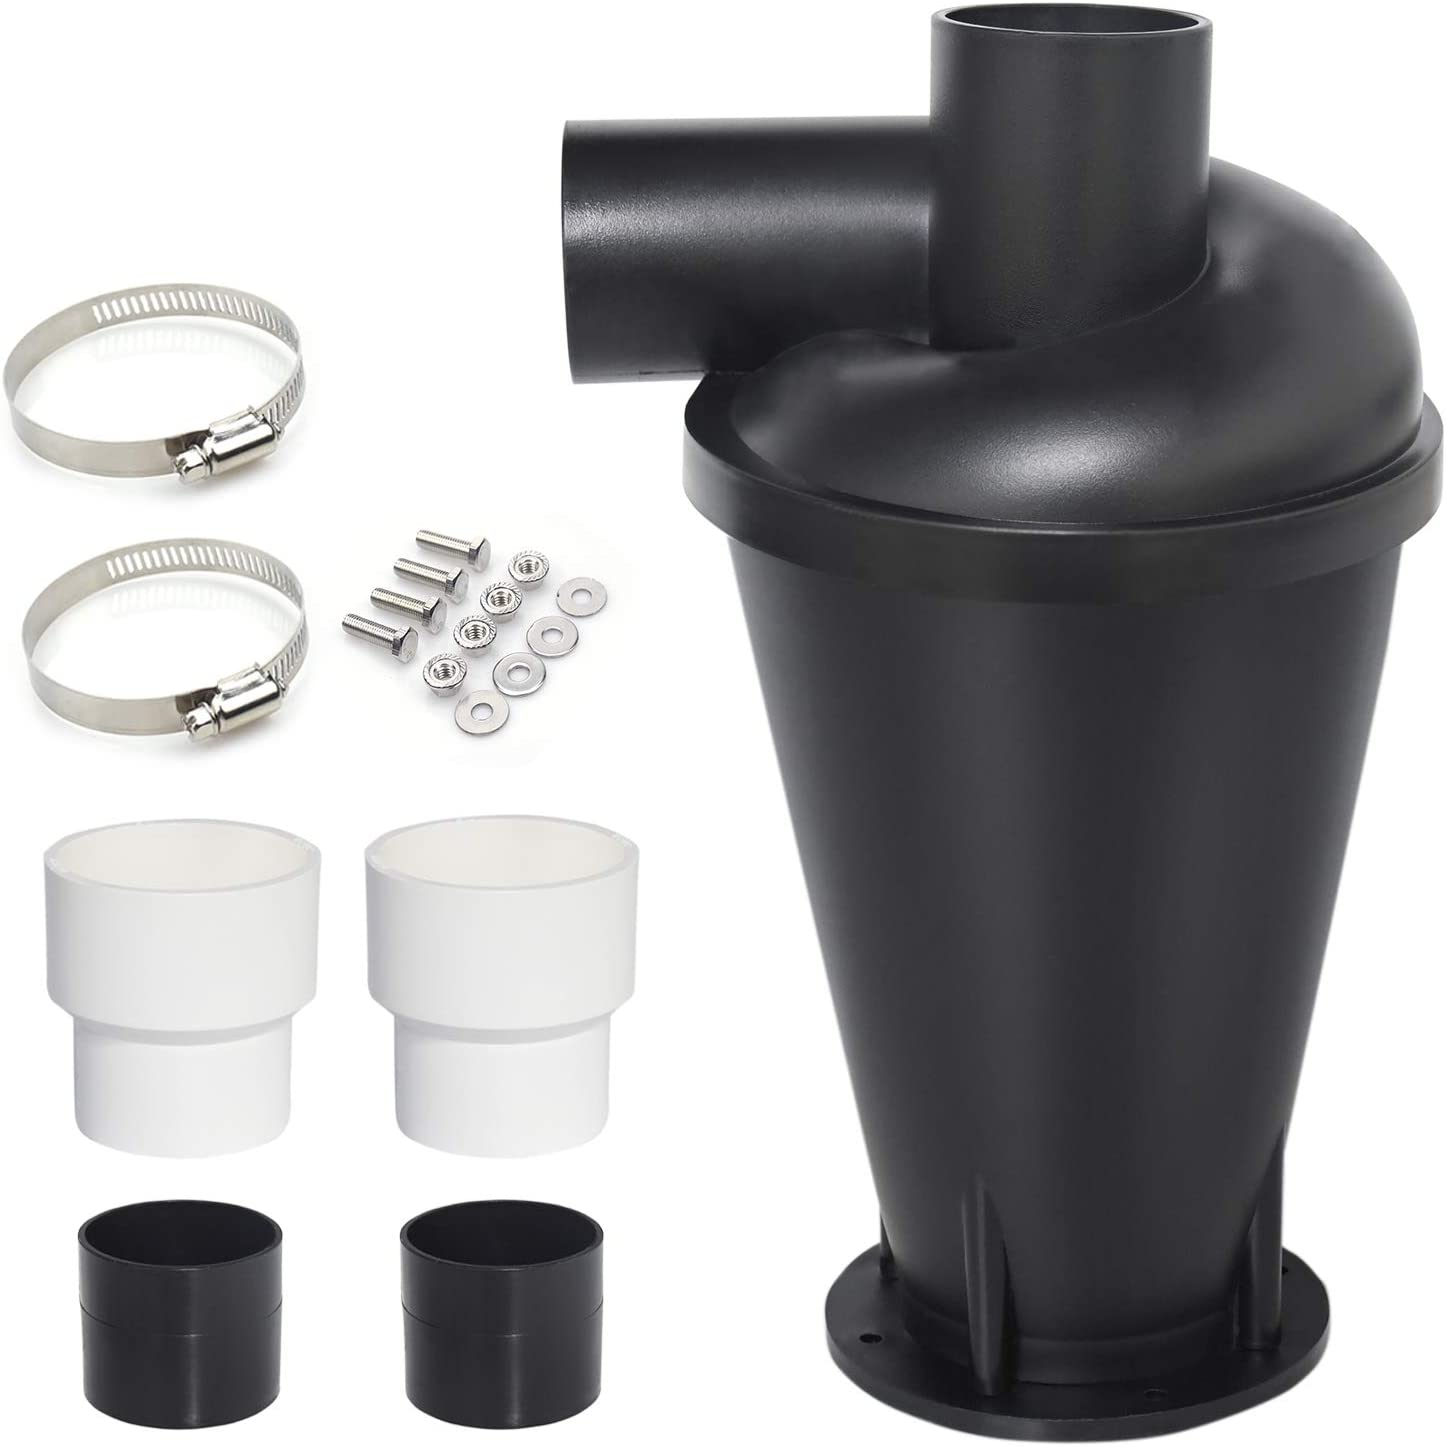 Senneny Dust Collector Cyclone Separator Dust Collection Kit System for Woodworking Shop Vac Workshop (Black)